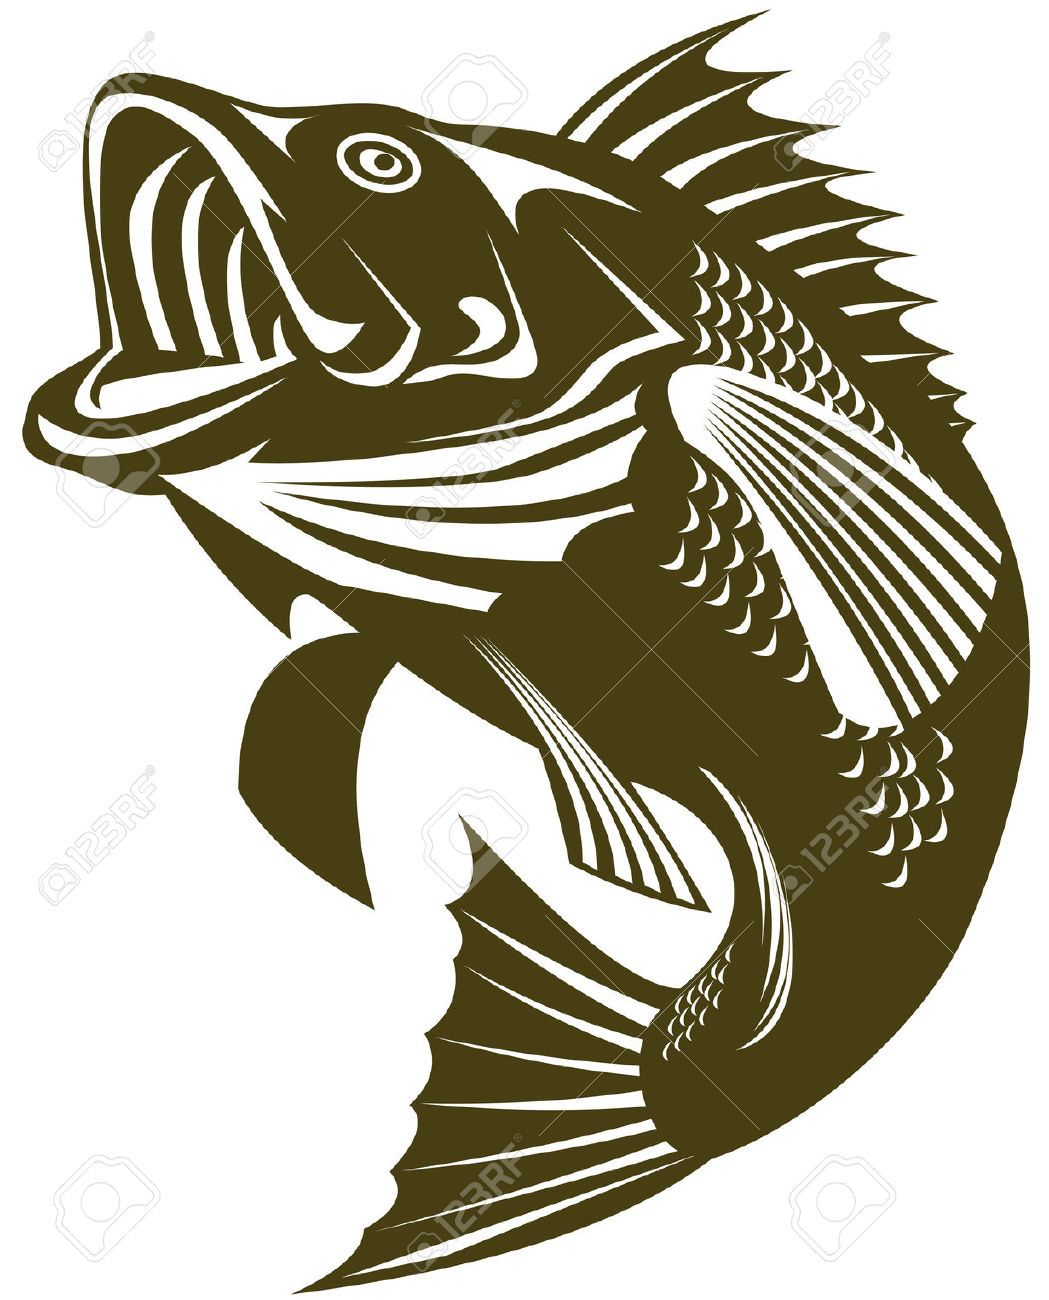 largemouth bass cliparts stock vector and royalty free largemouth